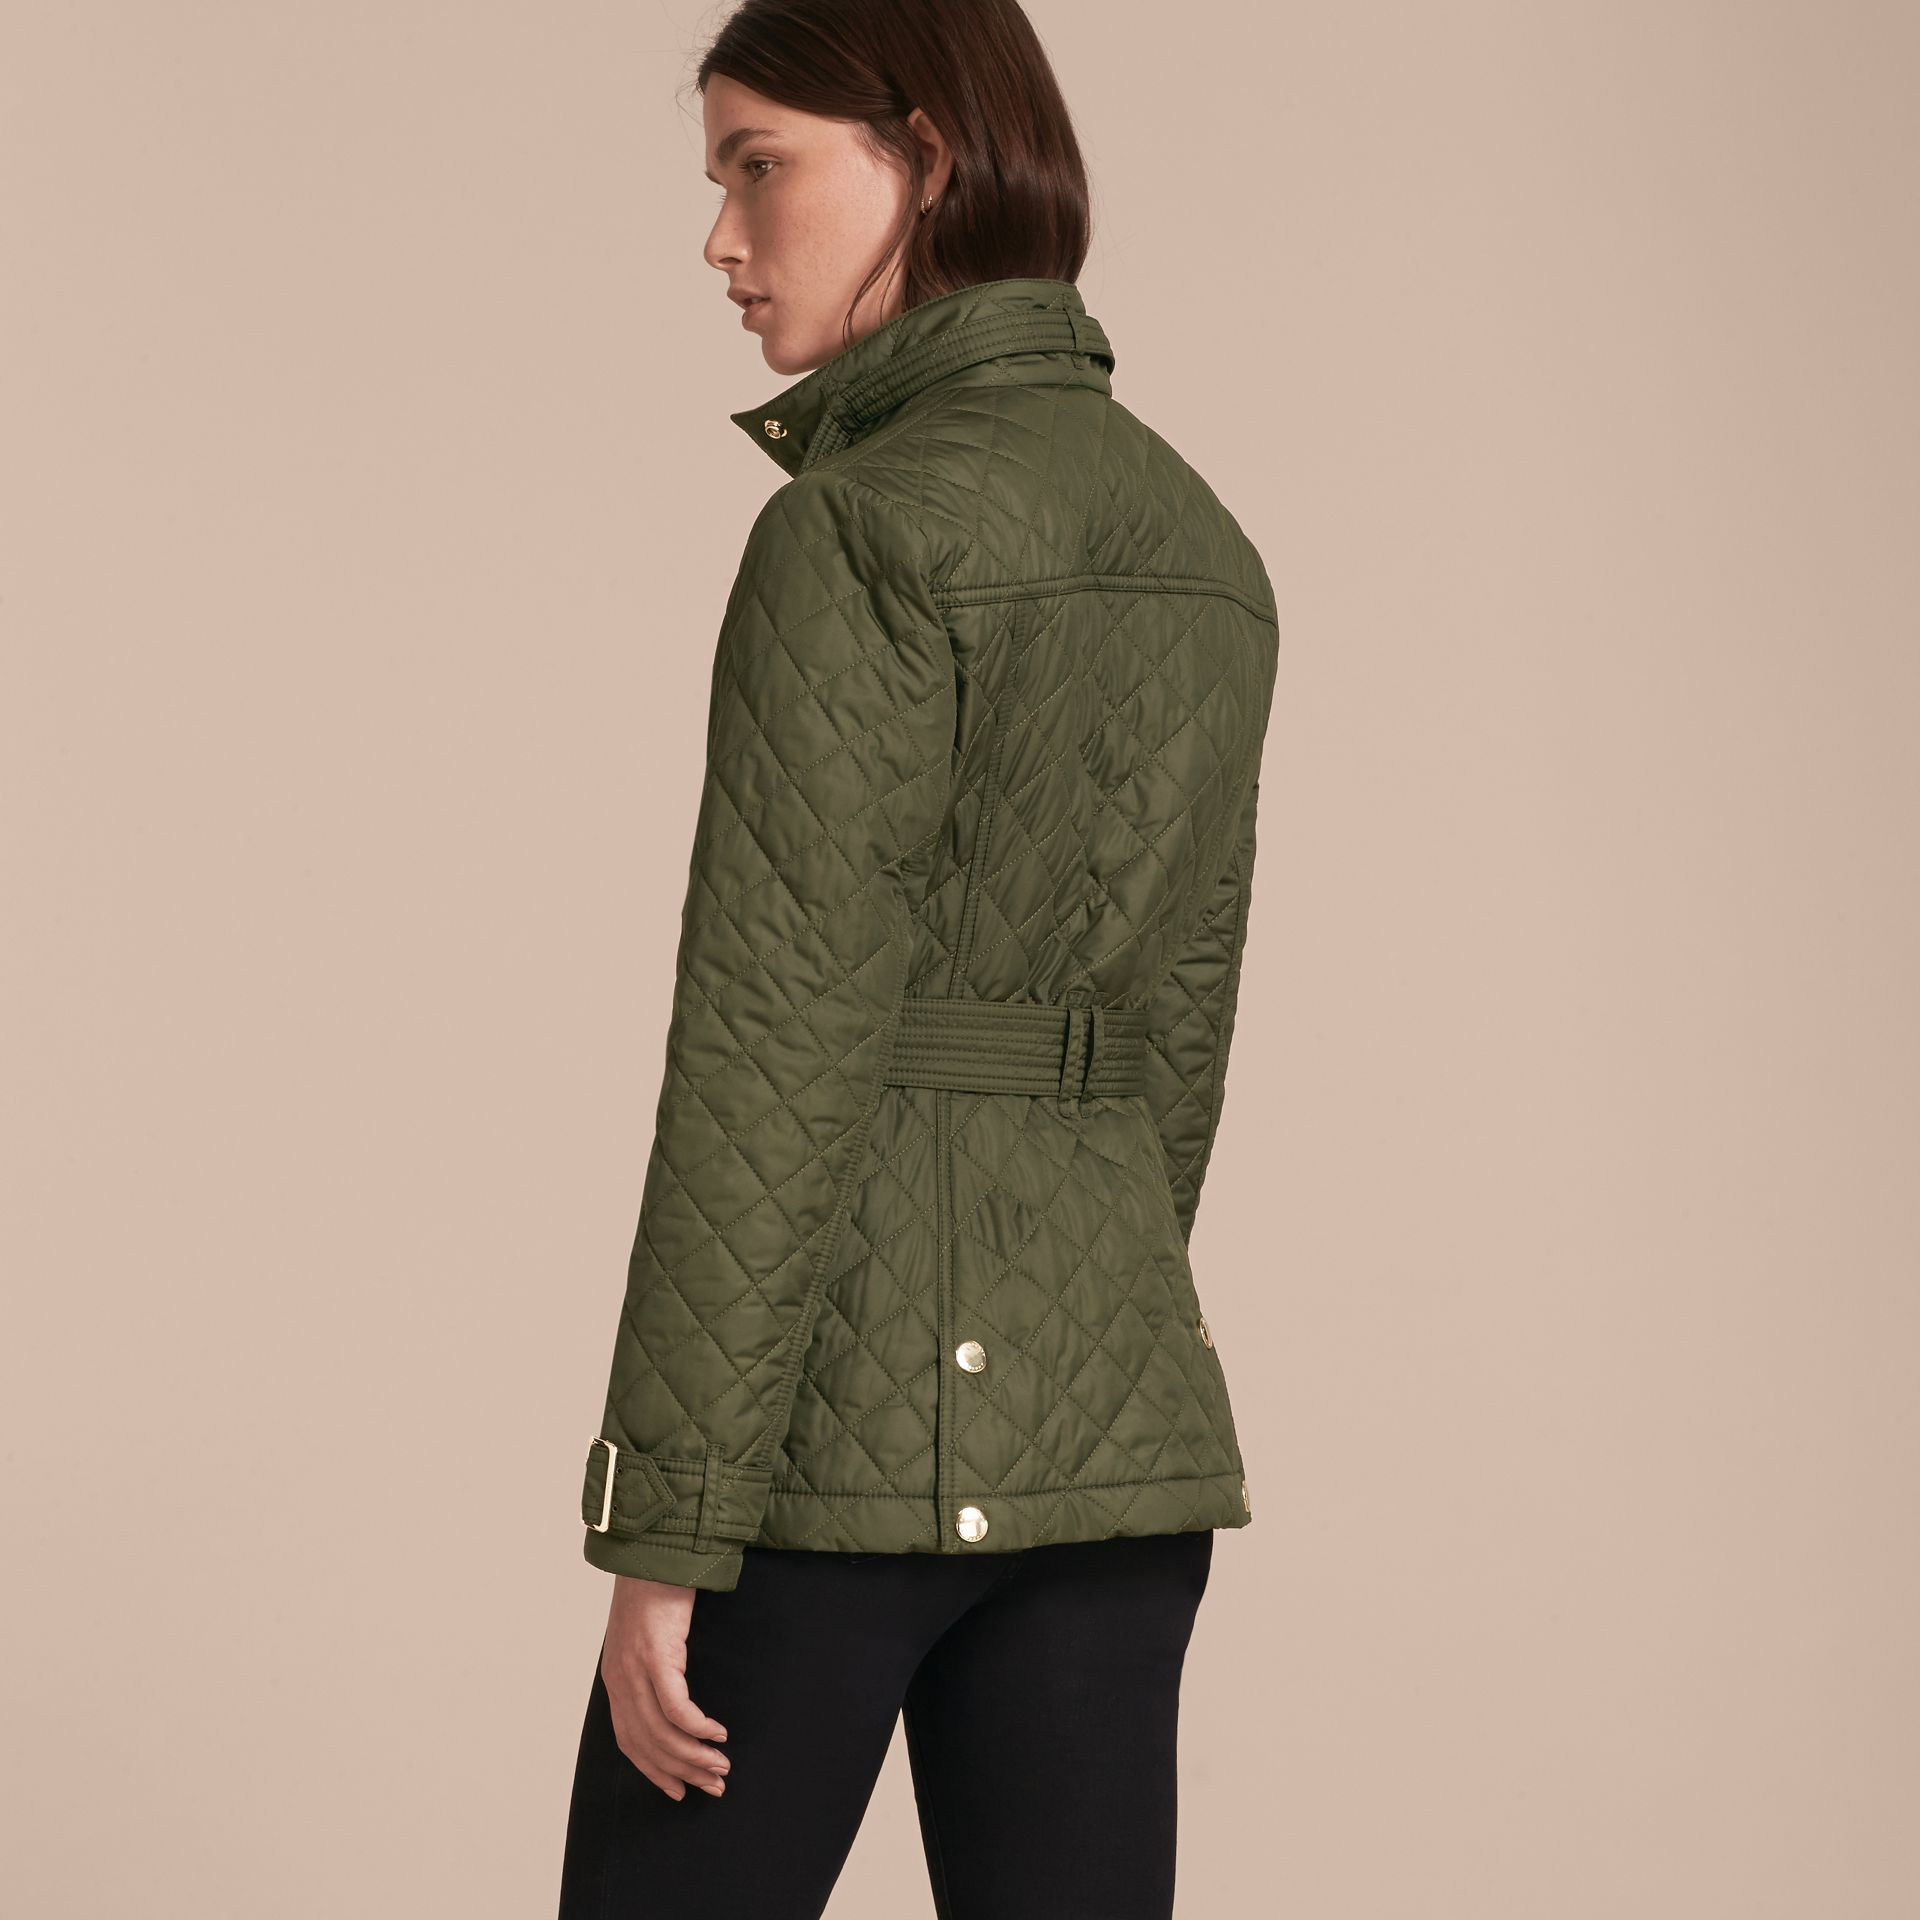 Buckle Detail Technical Field Jacket in Military Green - gallery image 3